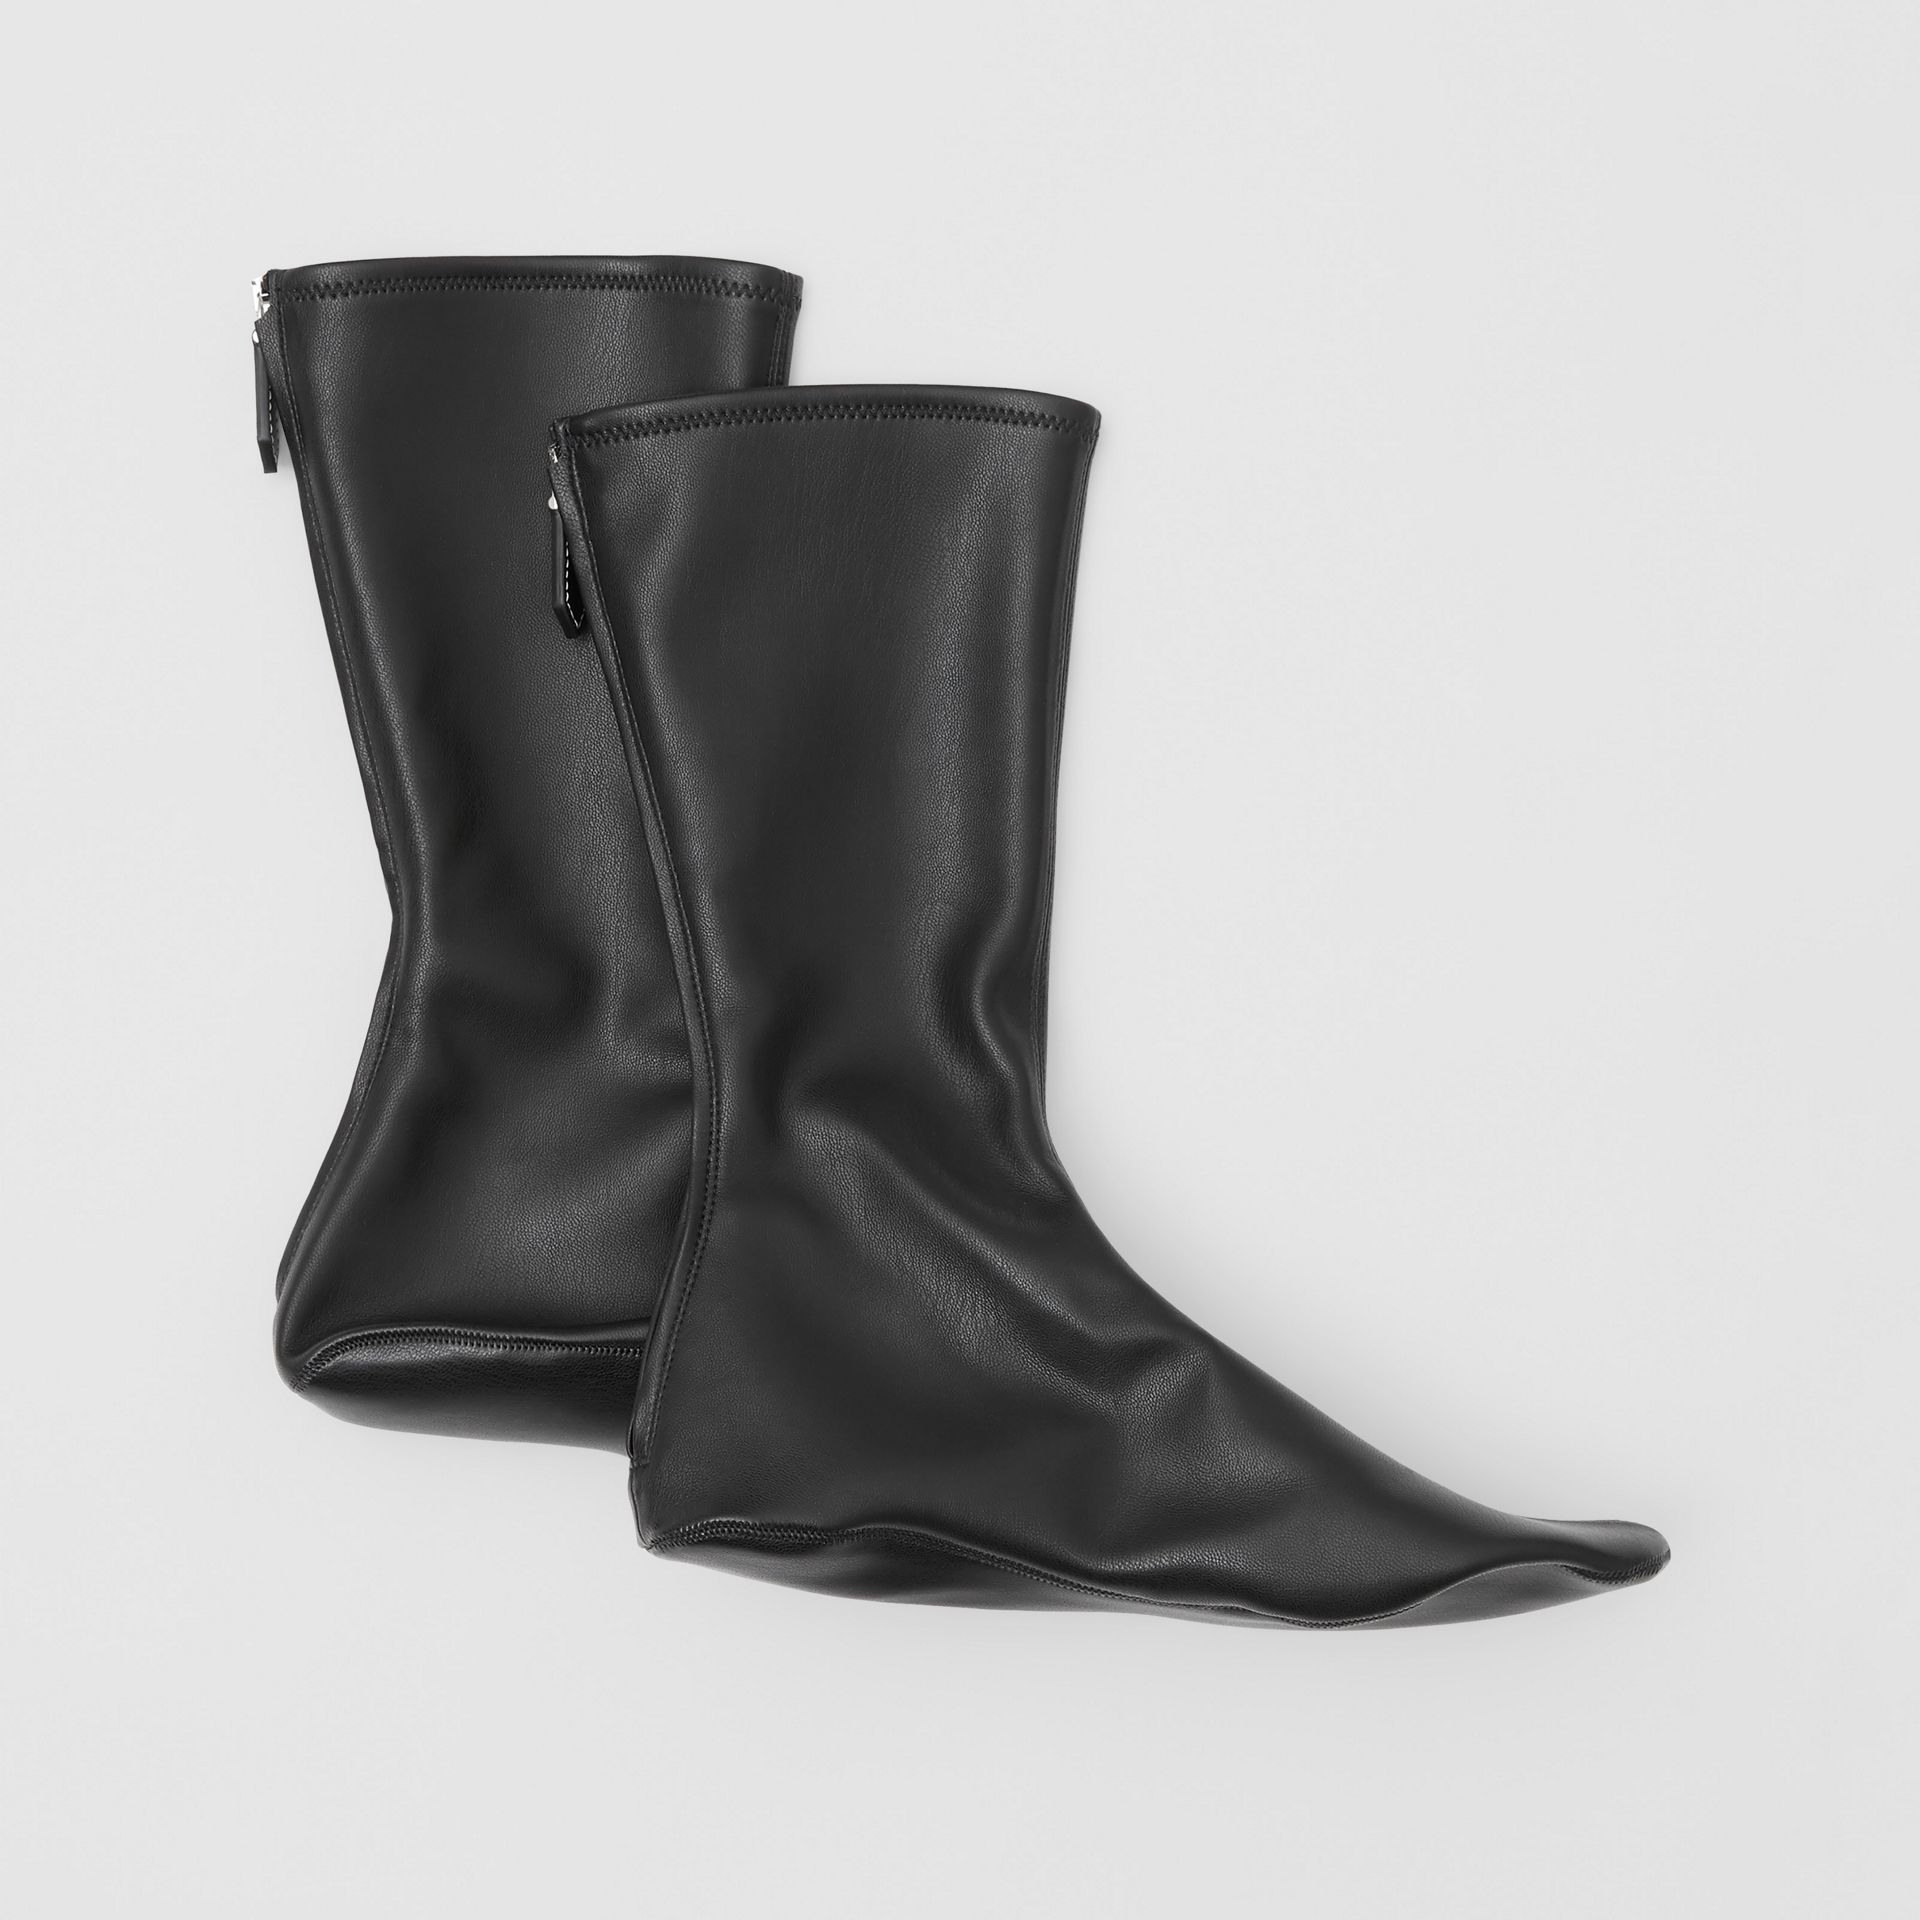 Faux Leather Mid-calf Socks in Black - Women | Burberry - gallery image 4